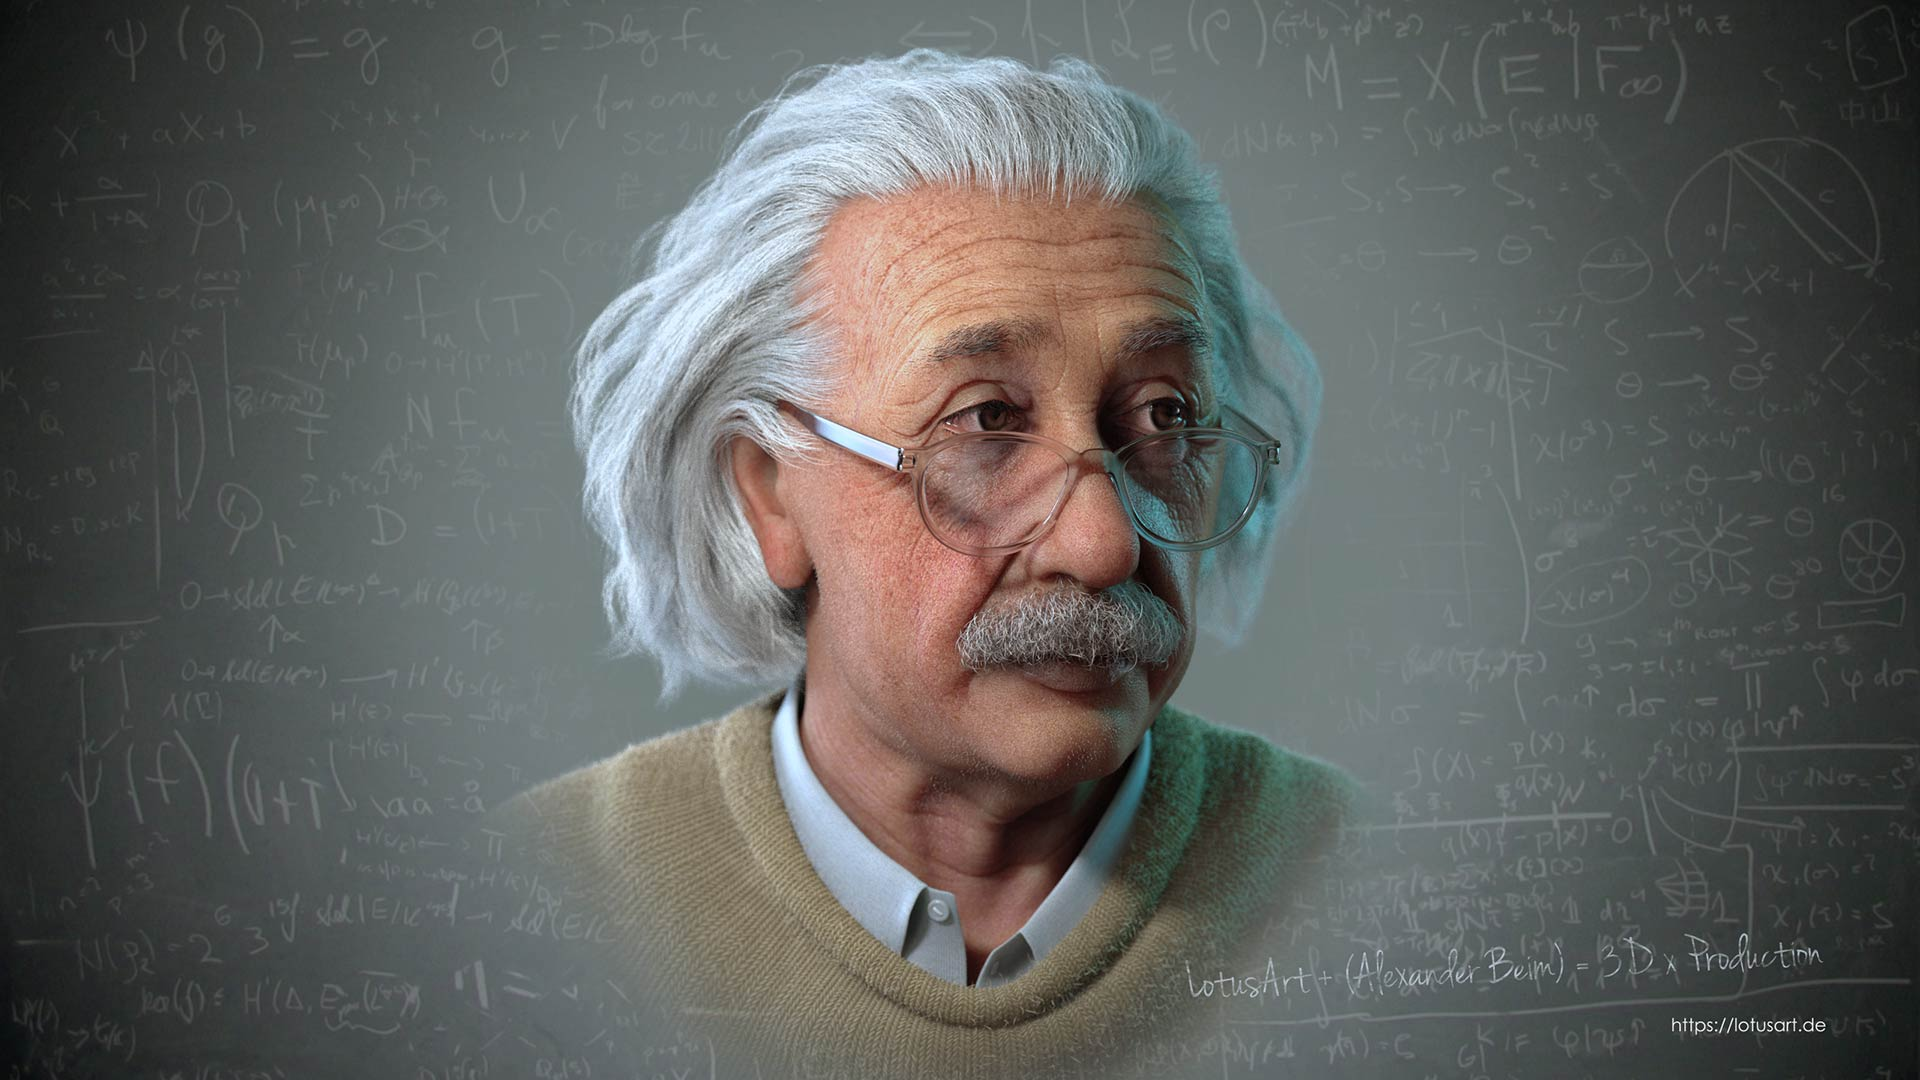 albert_einstein_3d_galasses_video_movie_futage Albert Einstein 3D Porträt für ein Hologram